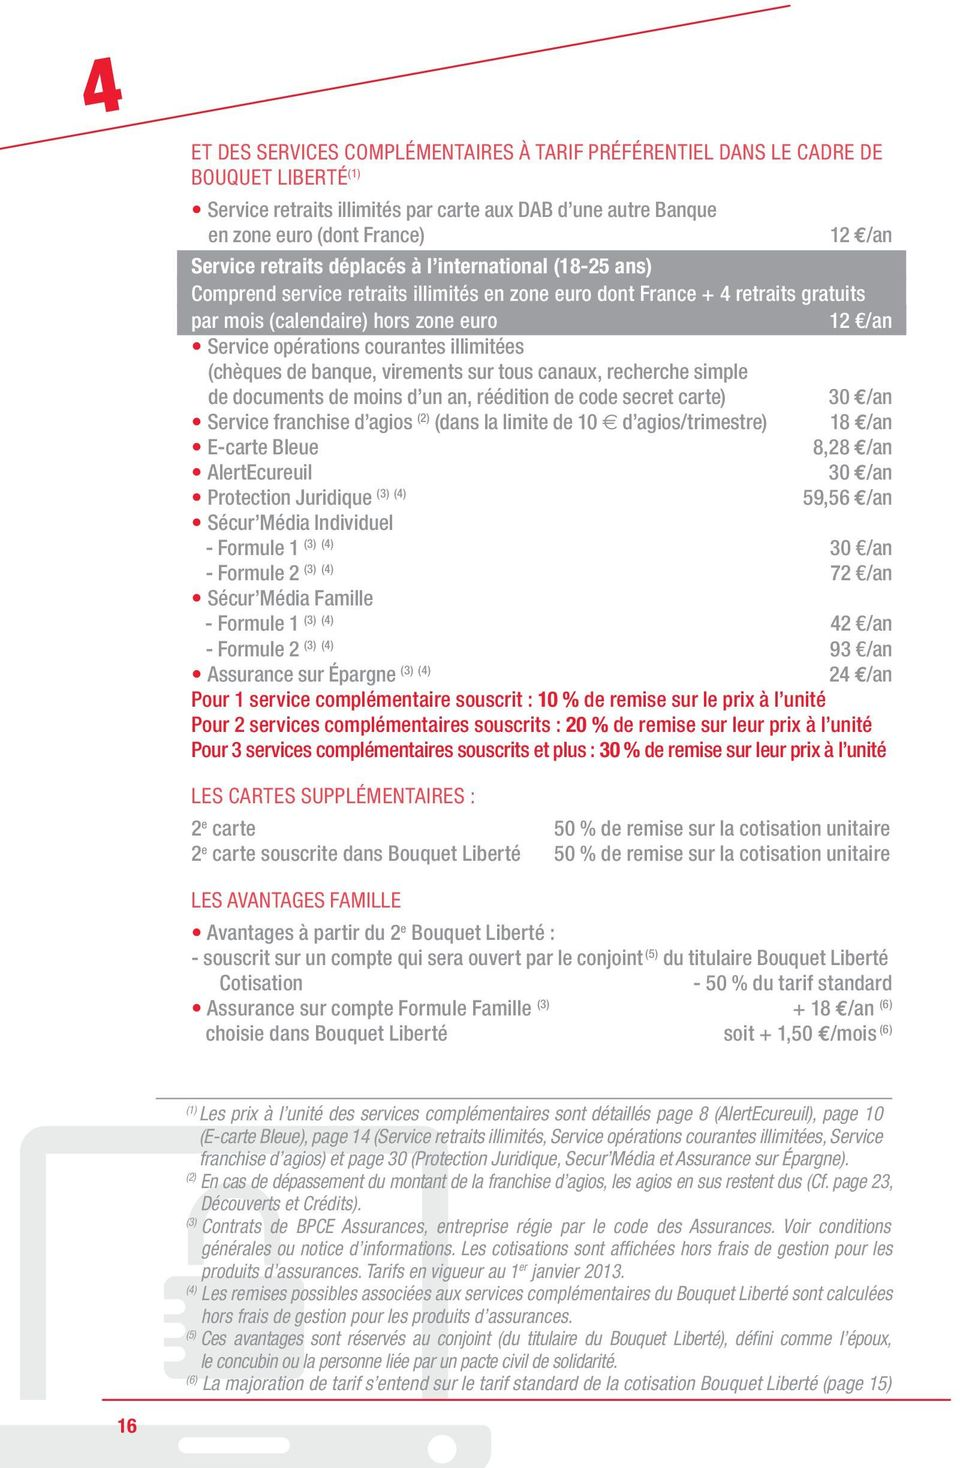 courantes illimitées (chèques de banque, virements sur tous canaux, recherche simple de documents de moins d un an, réédition de code secret carte) 30 /an Service franchise d agios (2) (dans la